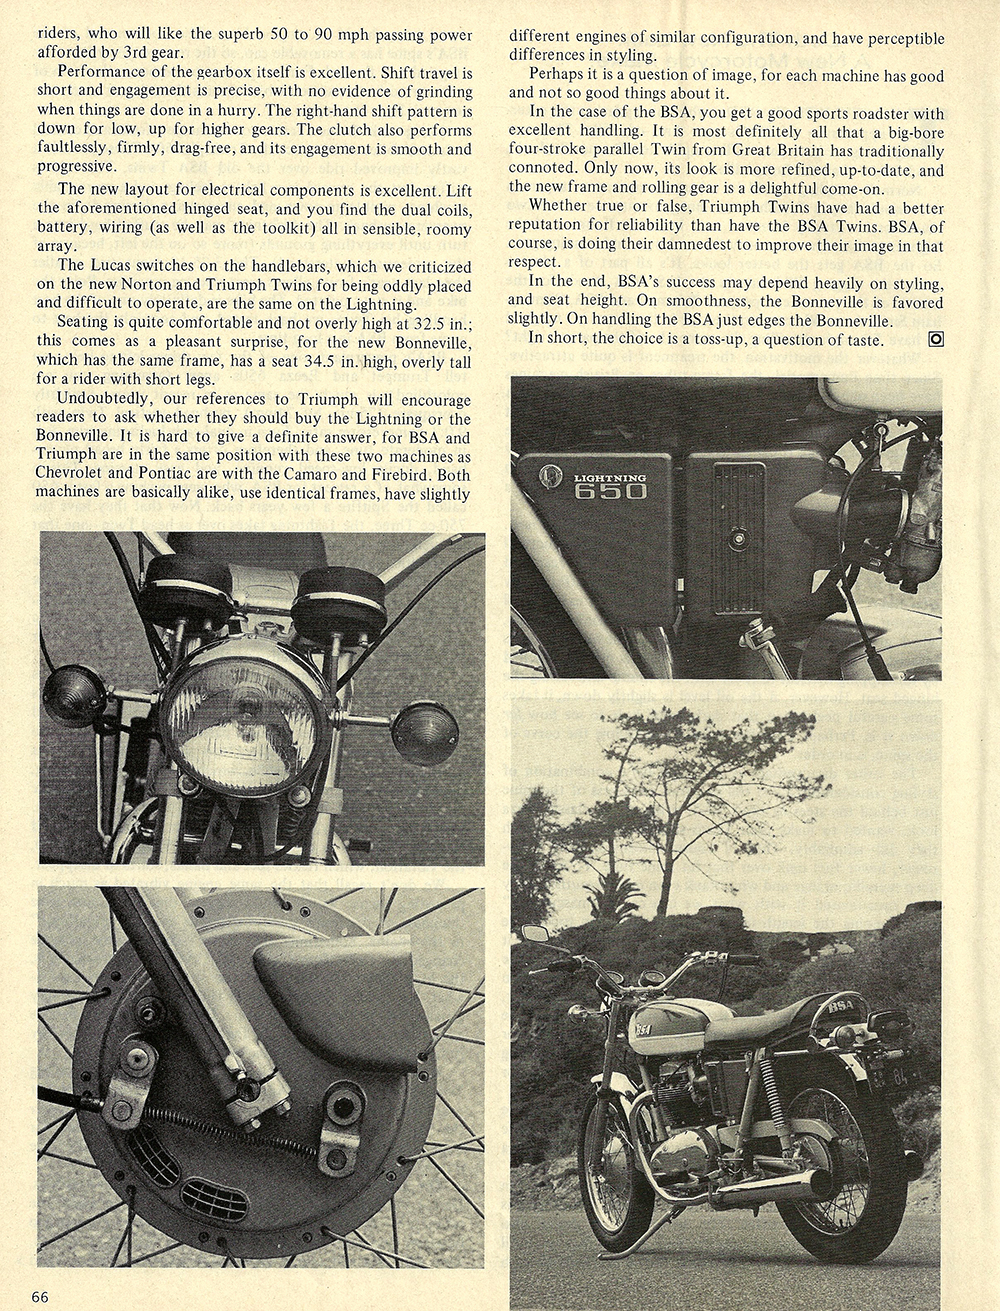 1971 BSA 650 Lightning road test 03.jpg